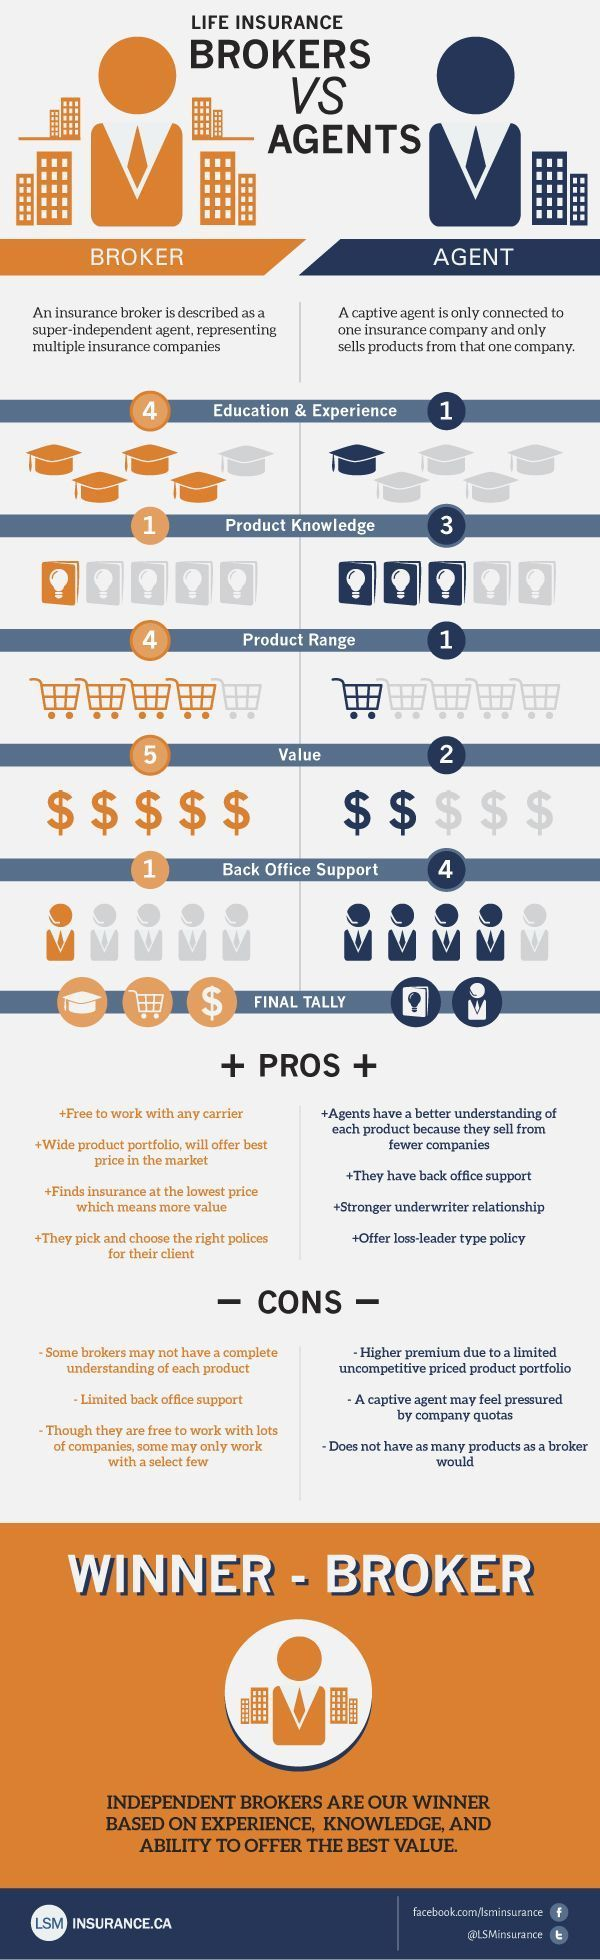 Difference Between Insurance Company And Insurance Broker Infographic Google Kereses Lifeinsuran Insurance Broker Life Insurance Facts Life Insurance Broker